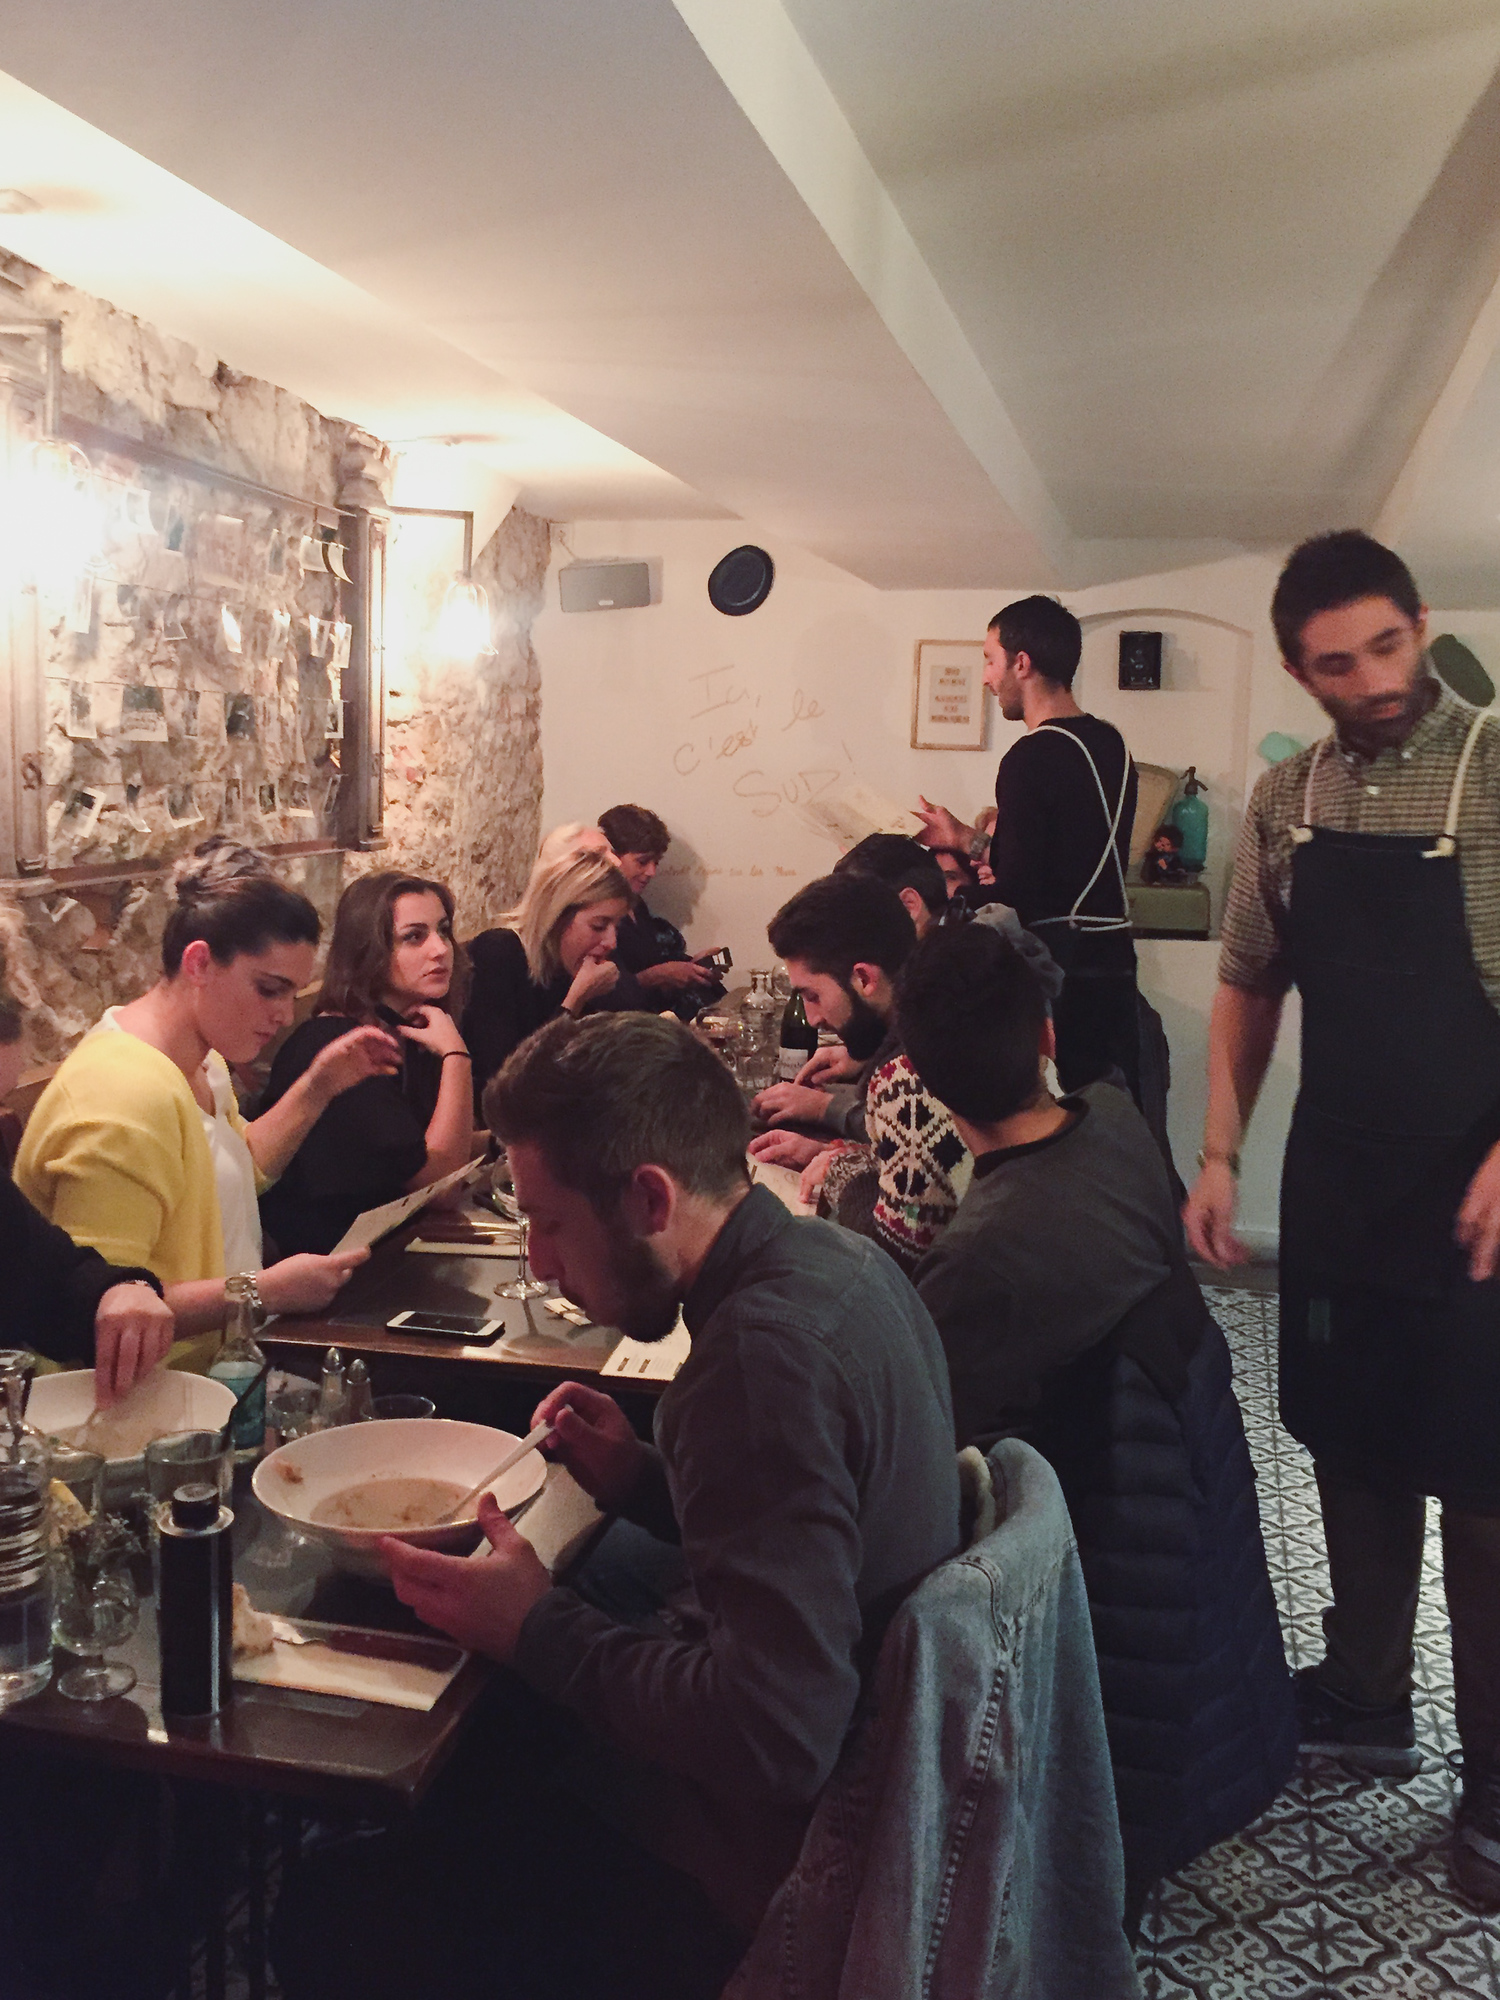 Le Mome is a Corsican restaurant in Aix en Provence and considered one of the best in the city. Check out our top locals' picks on where to eat in Aix en Provence and avoid the tourist traps.